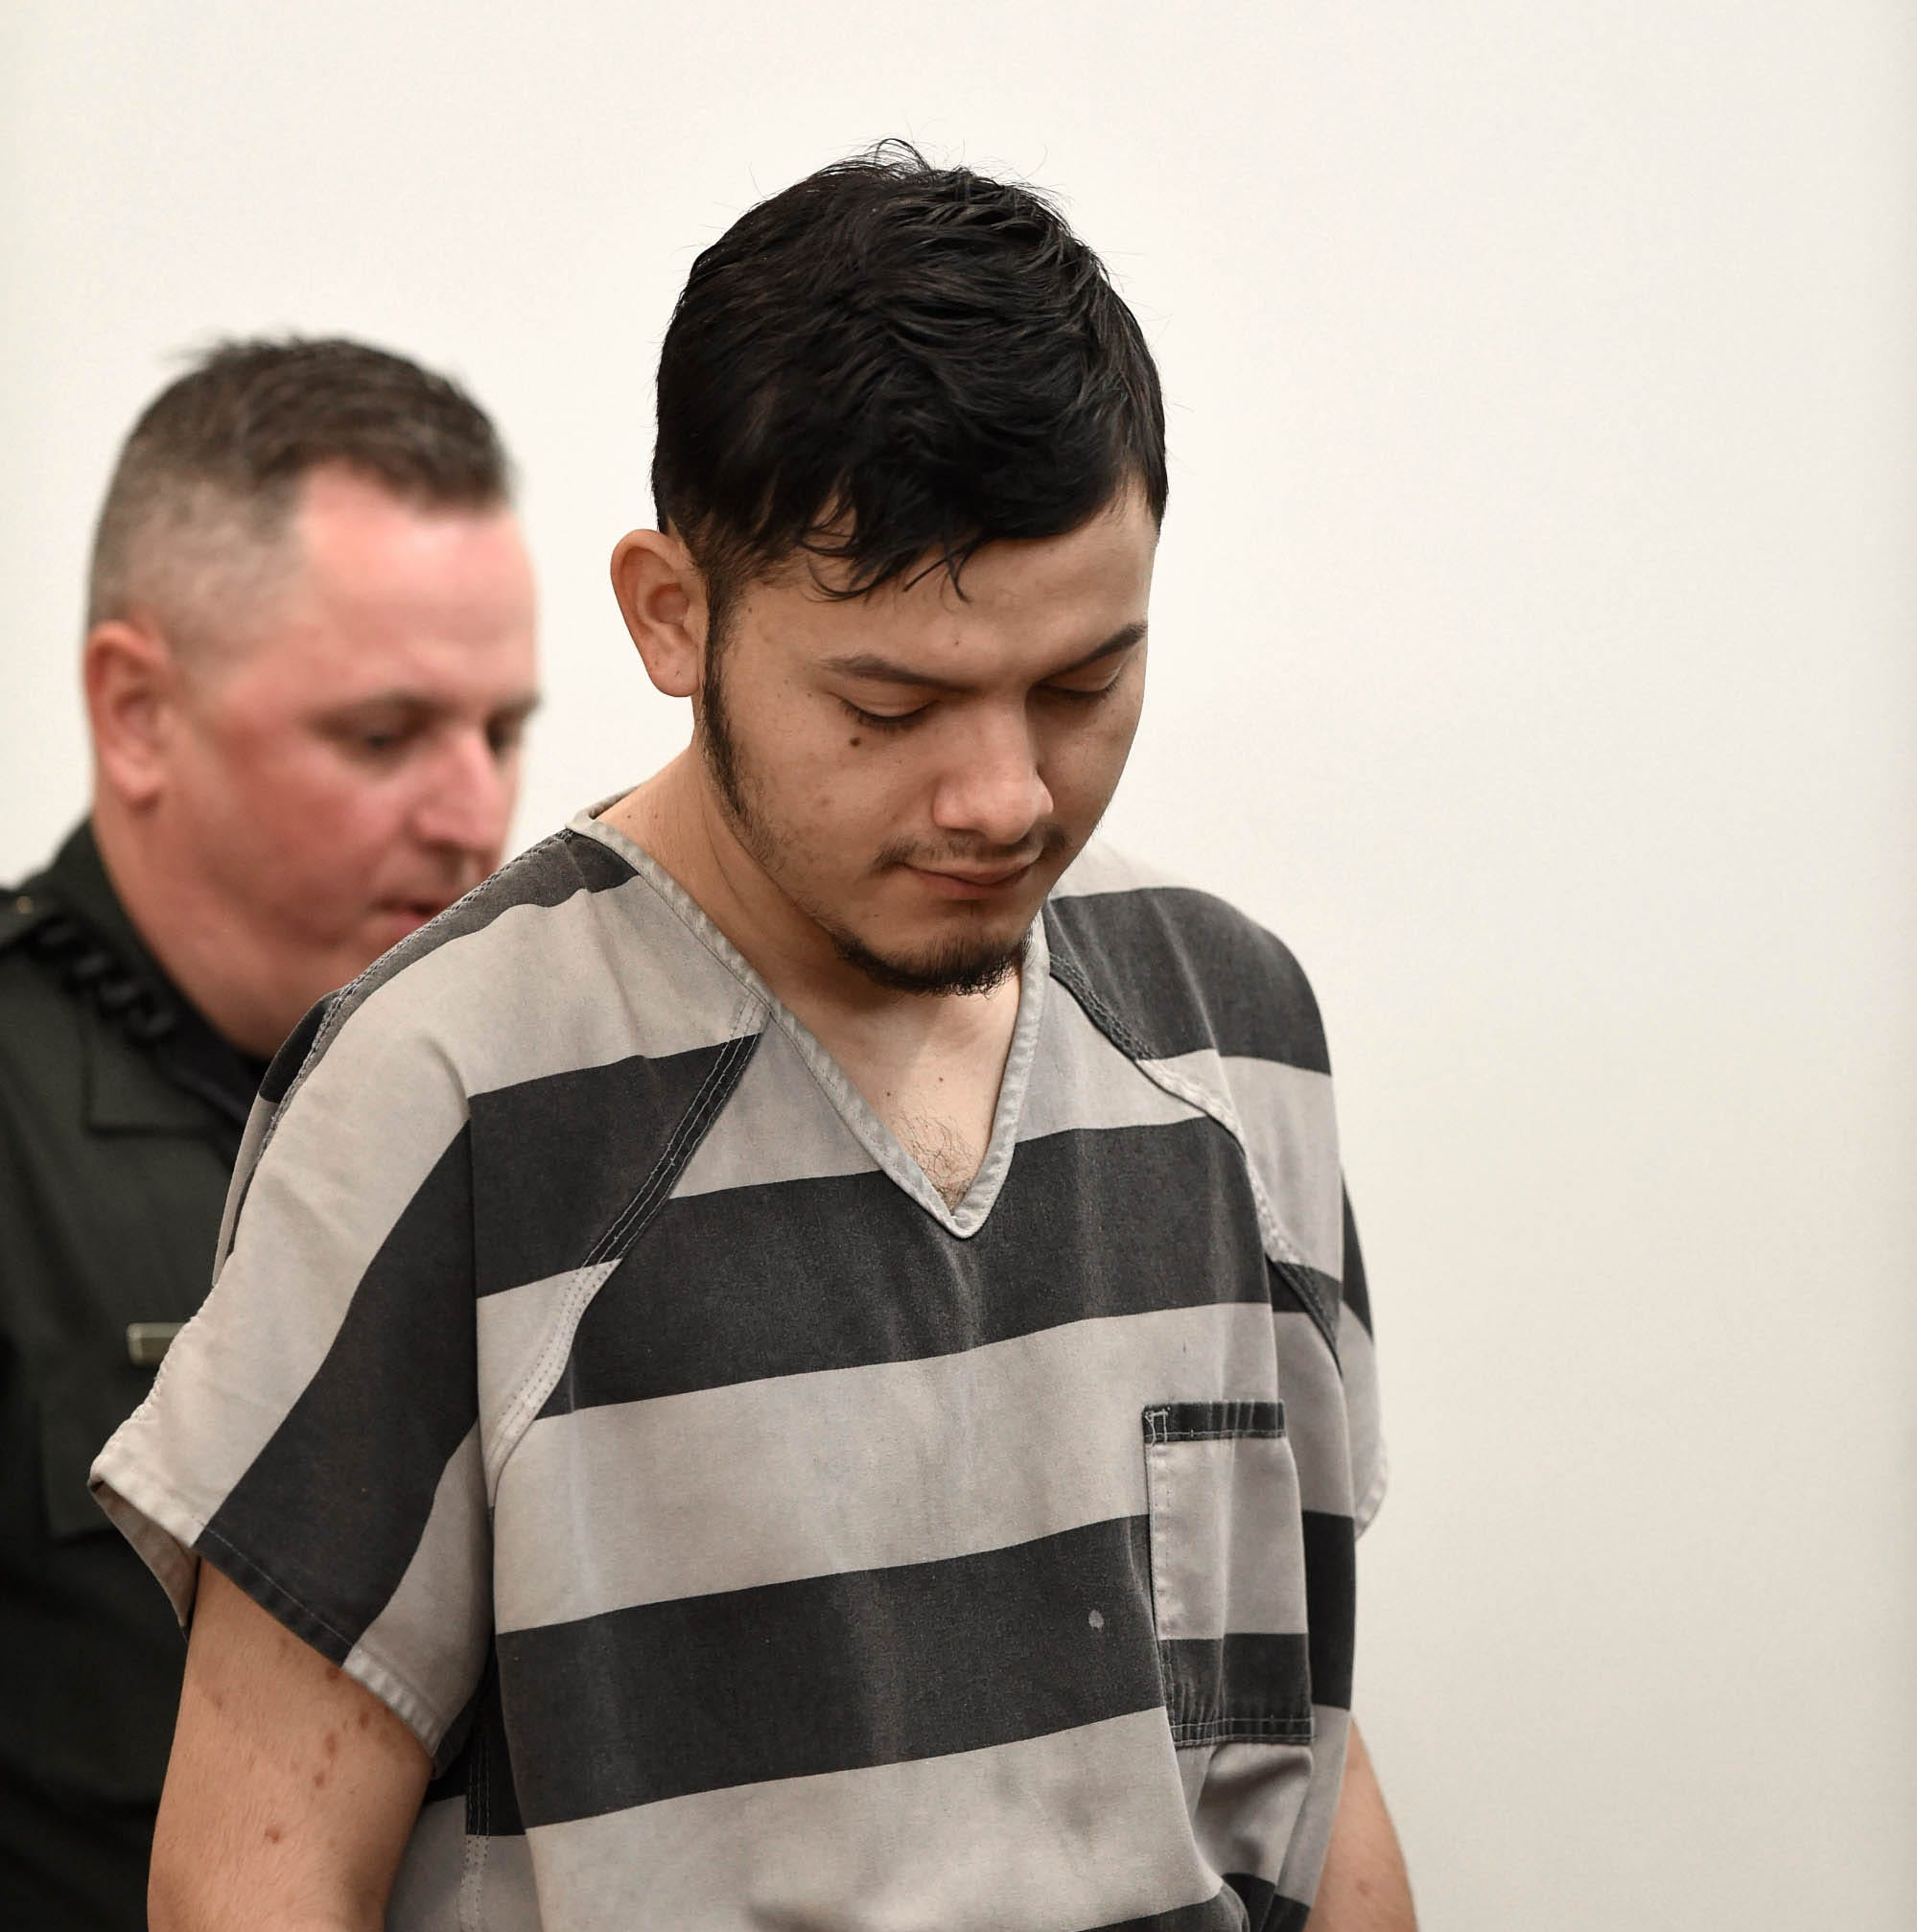 Martinez-Guzman waives preliminary hearing, will be transferred to Washoe to face murder charges